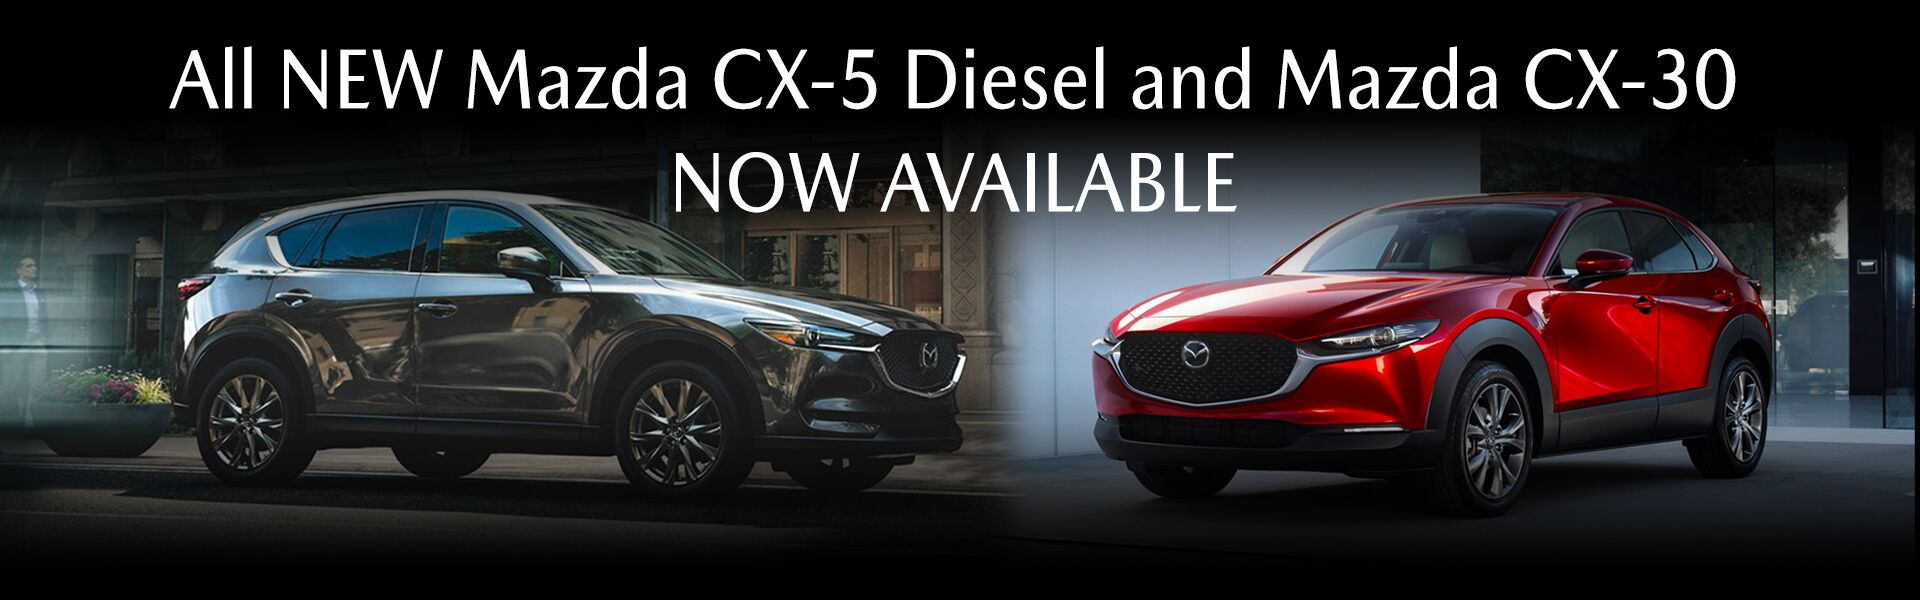 CX-30 and diesel CX-5